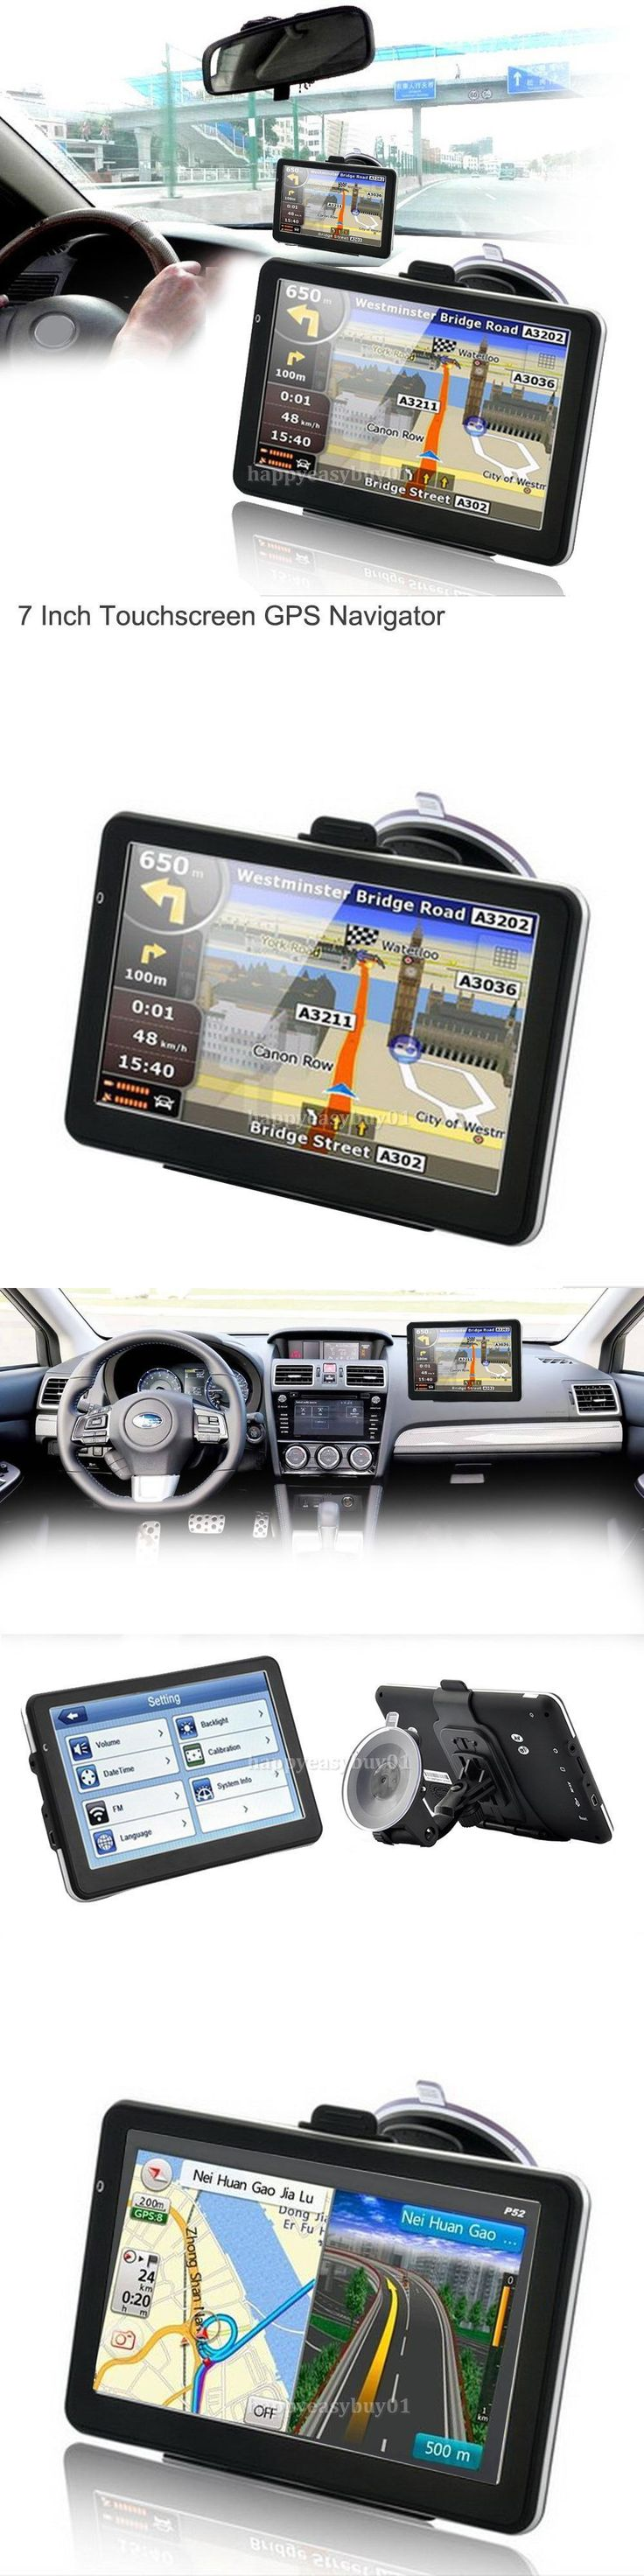 GPS Units: 7 Hd Touch Portable Truck Car Gps Navigator Navigation With Free Lifetime Maps -> BUY IT NOW ONLY: $46.45 on eBay!